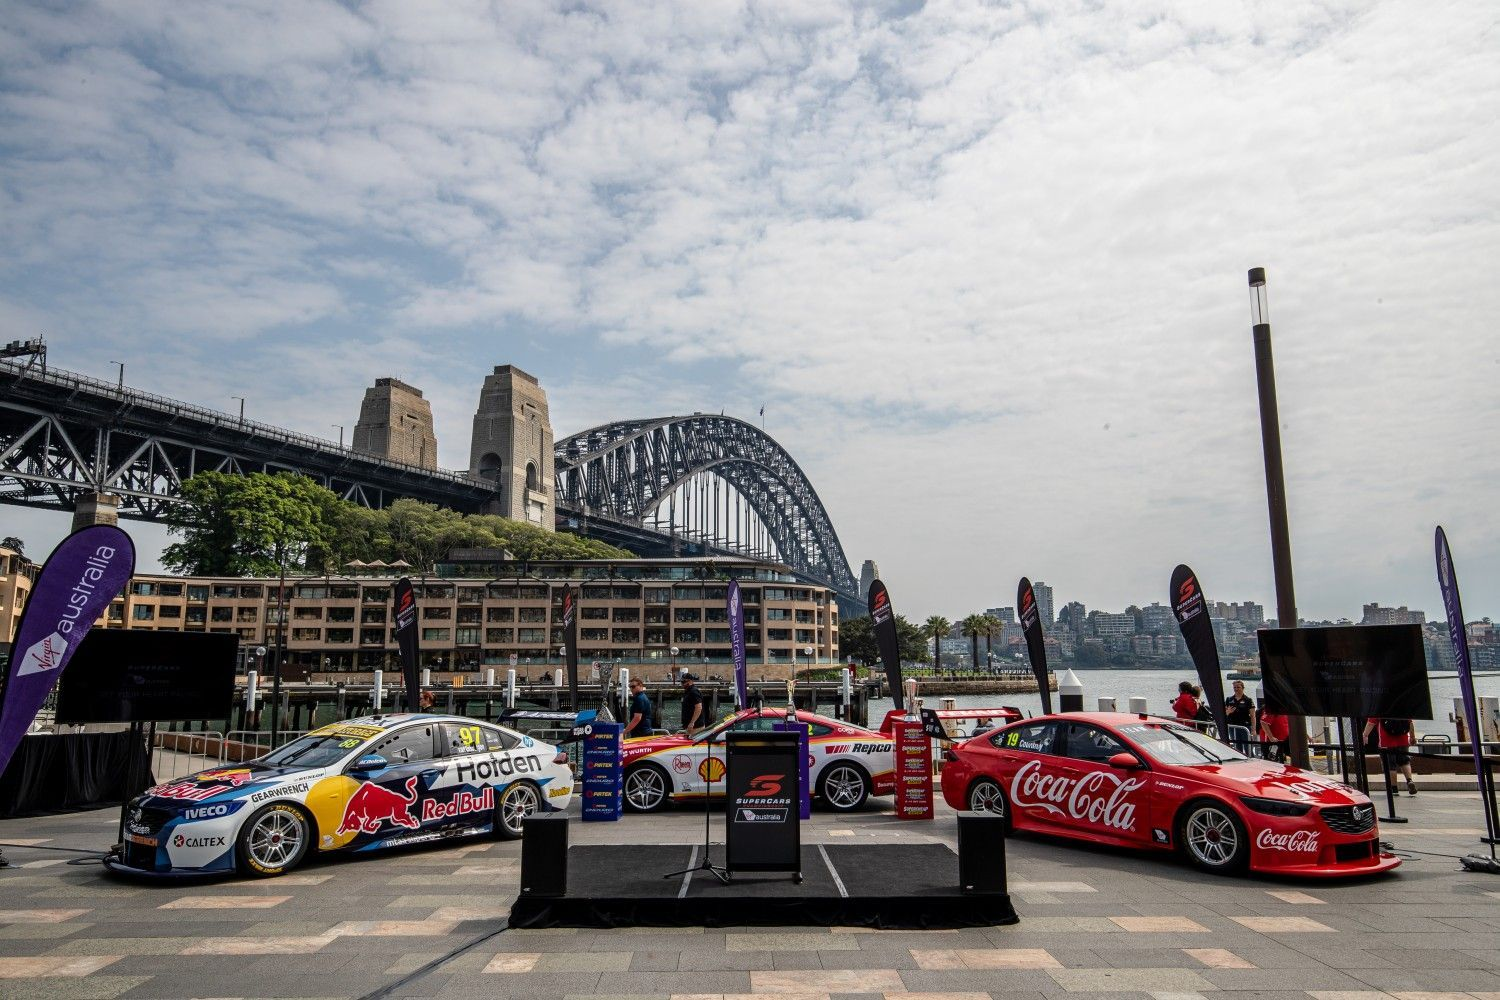 2020 Supercars Championship Launches In Sydney In 2020 Super Cars Touring Car Racing Sydney